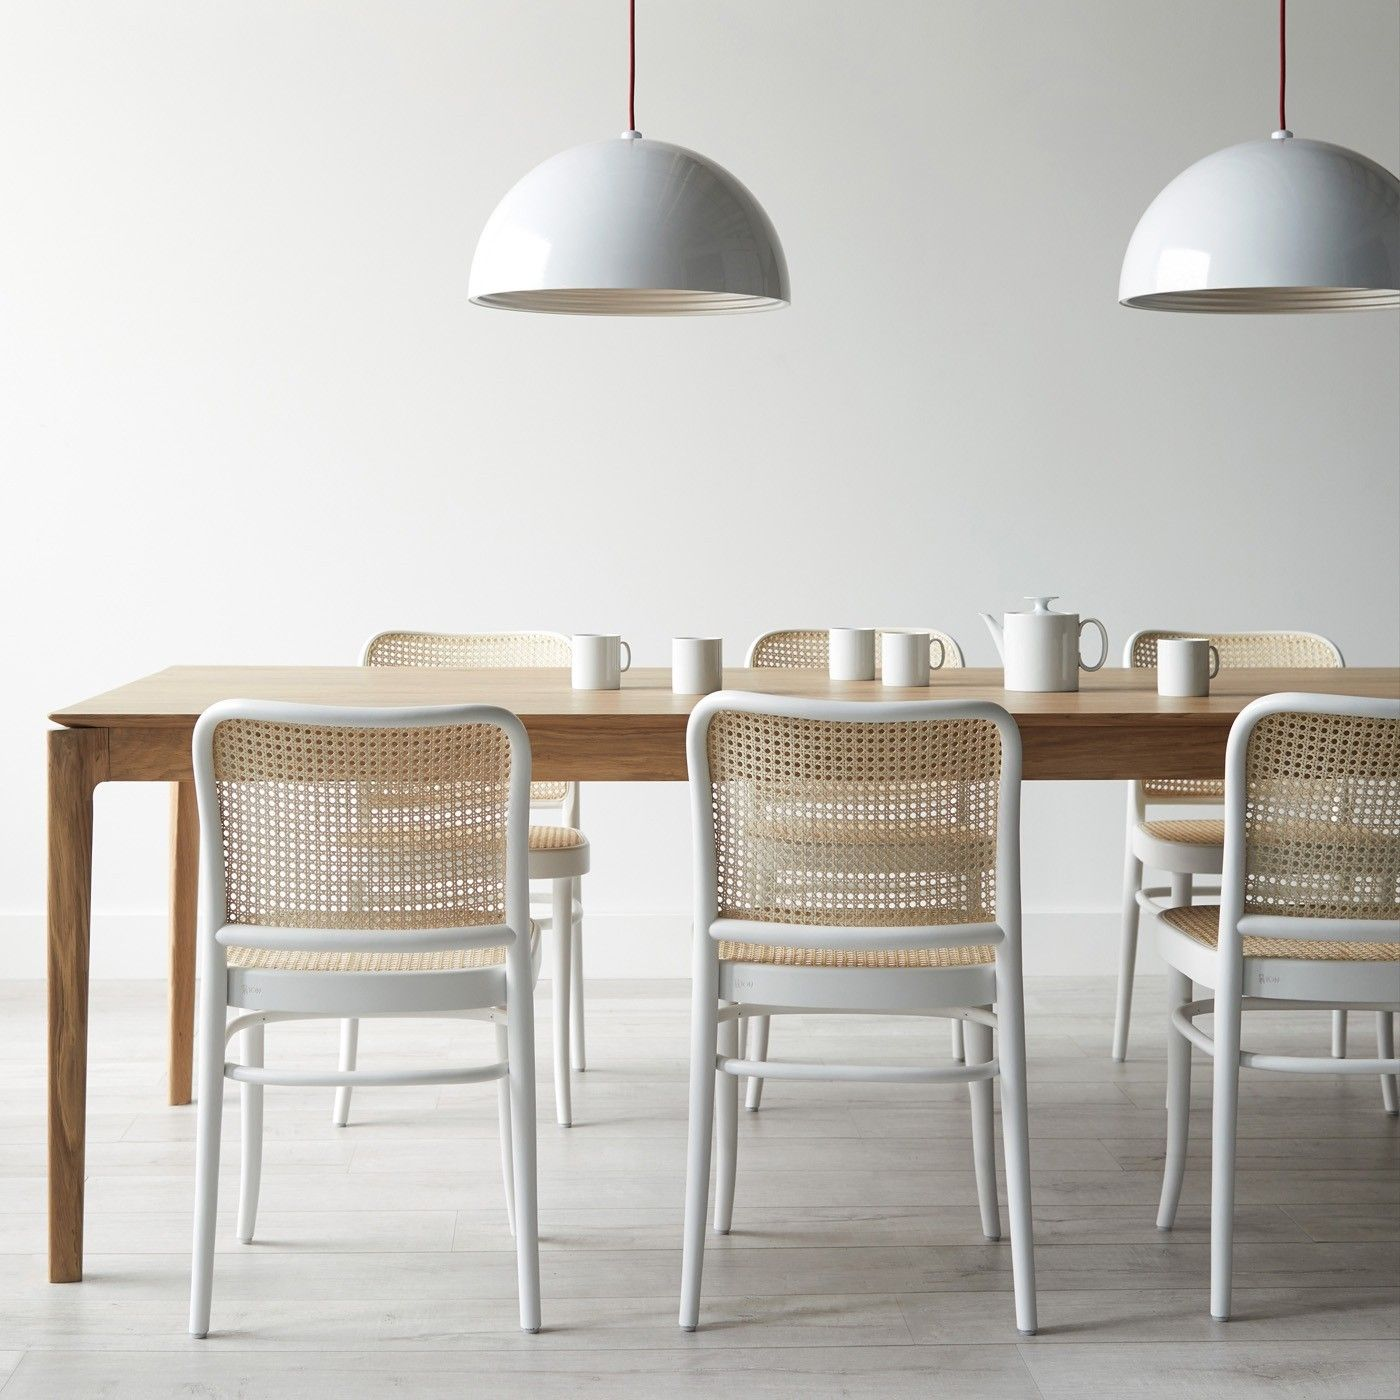 811 White Side Chair Rattan Dining Chairs Oak Dining Table